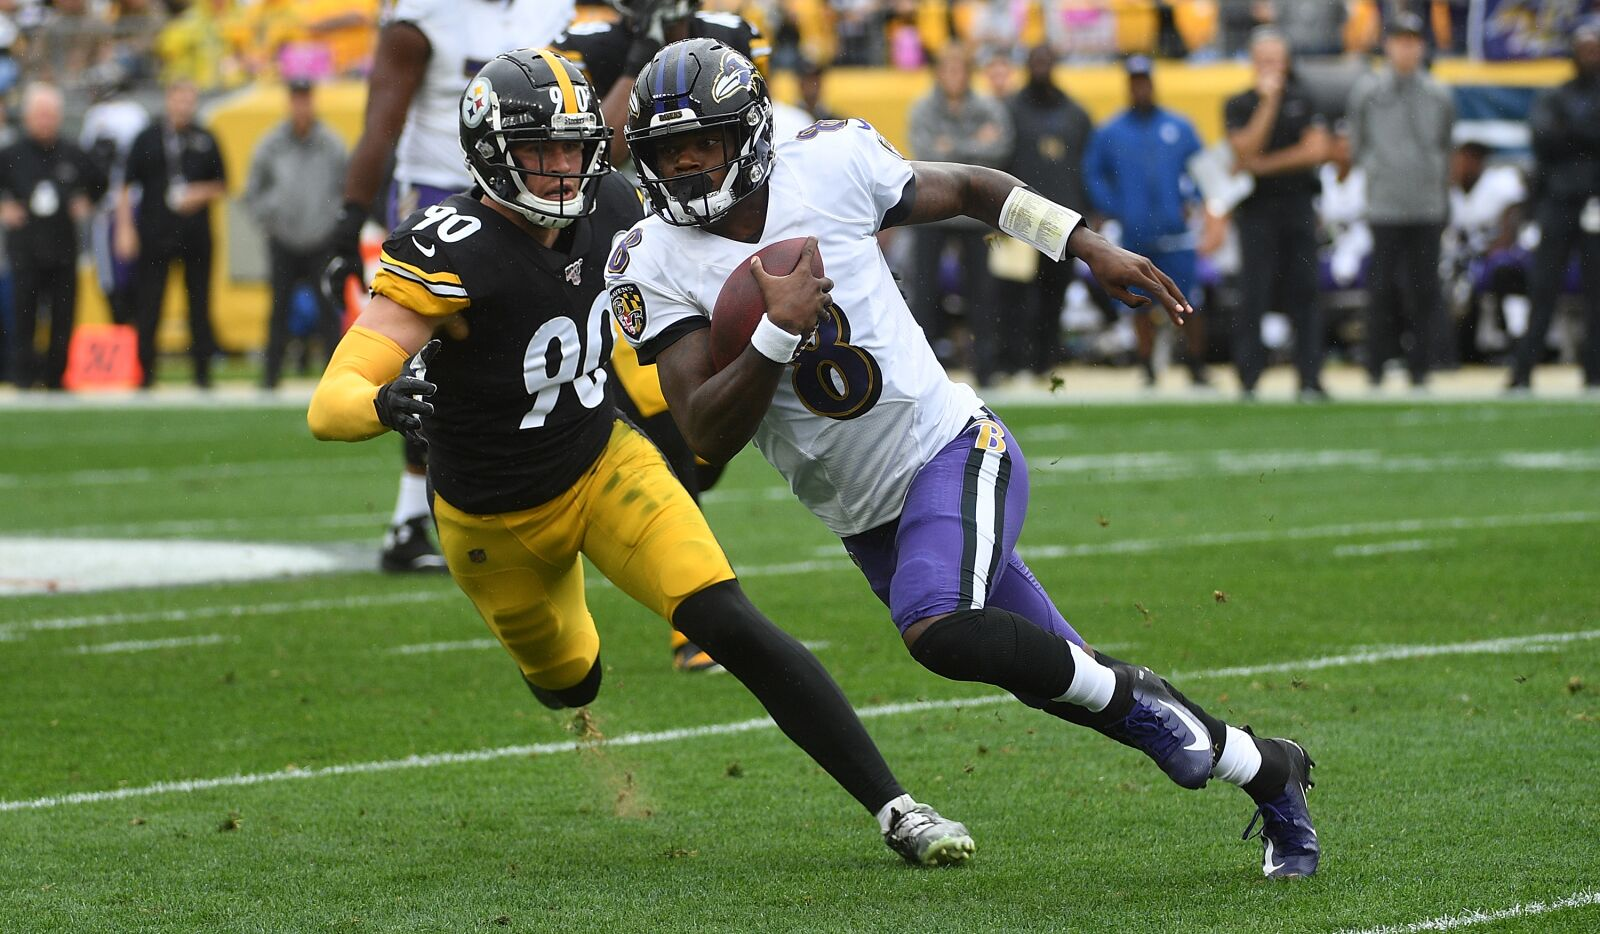 Steelers vs. Ravens: Questions answered after Pittsburgh's 4th loss